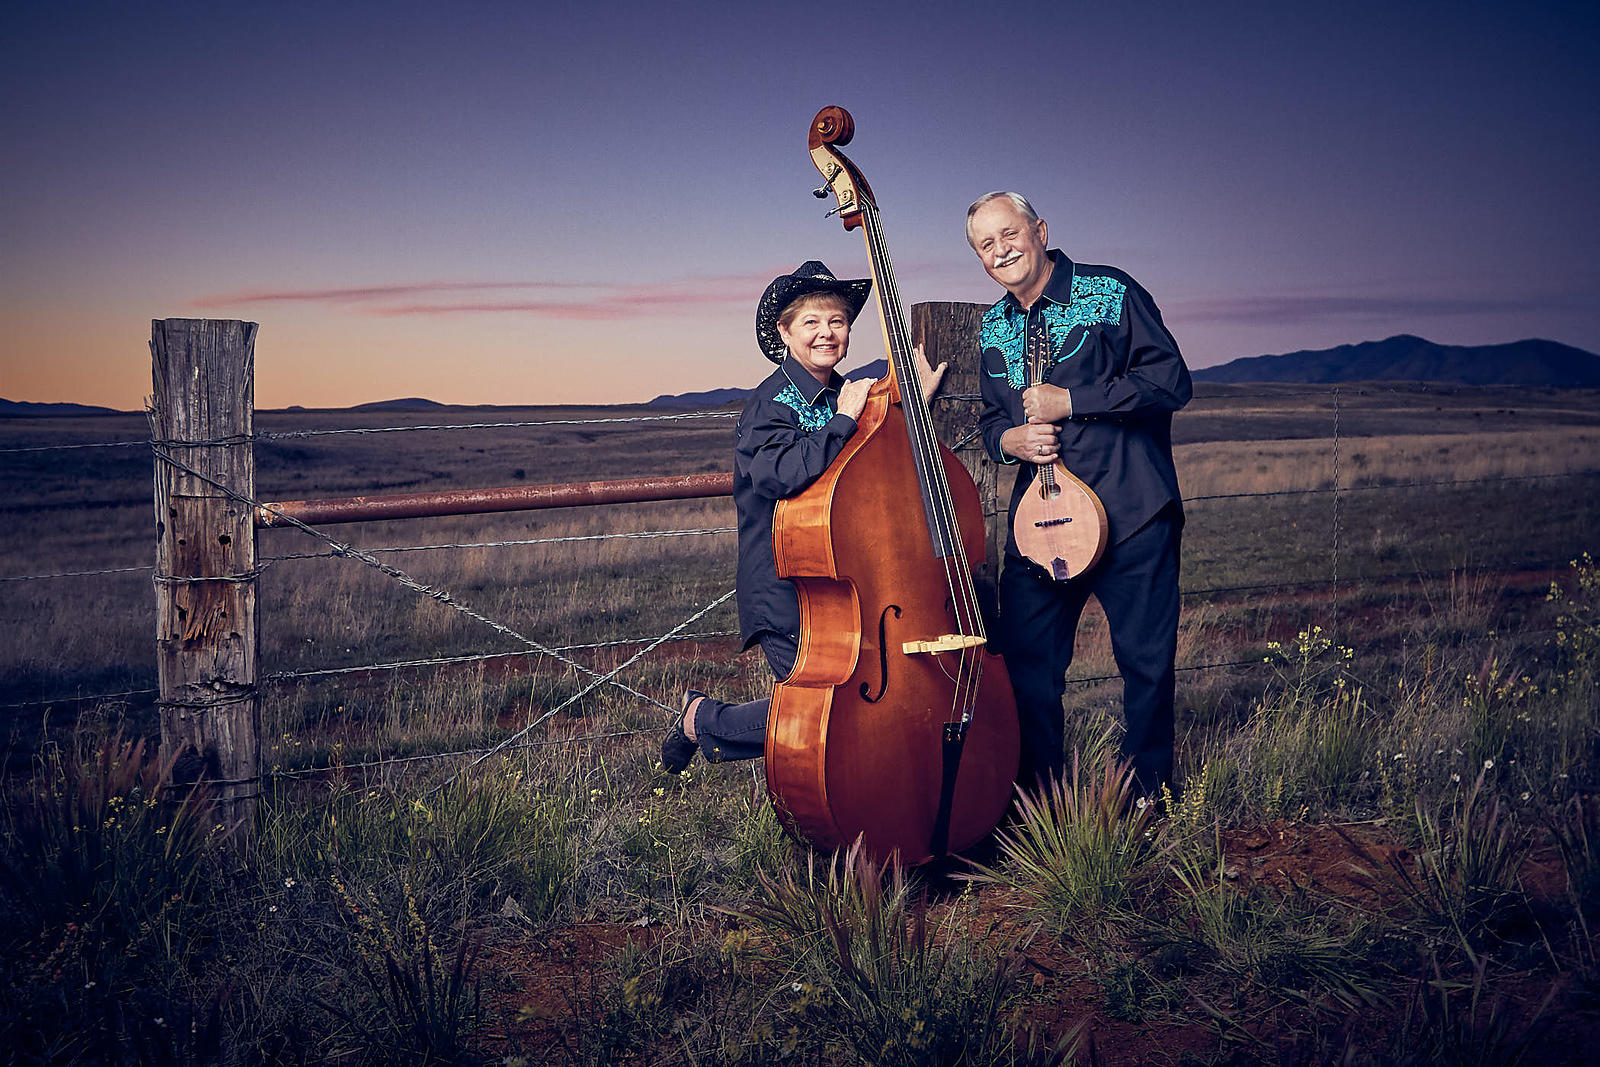 06-contrabass-and-mandolin-musicians-in-a-evocative-colorful-sunset-field-which-conveys-a-feeling-of-depth-and-intrigue